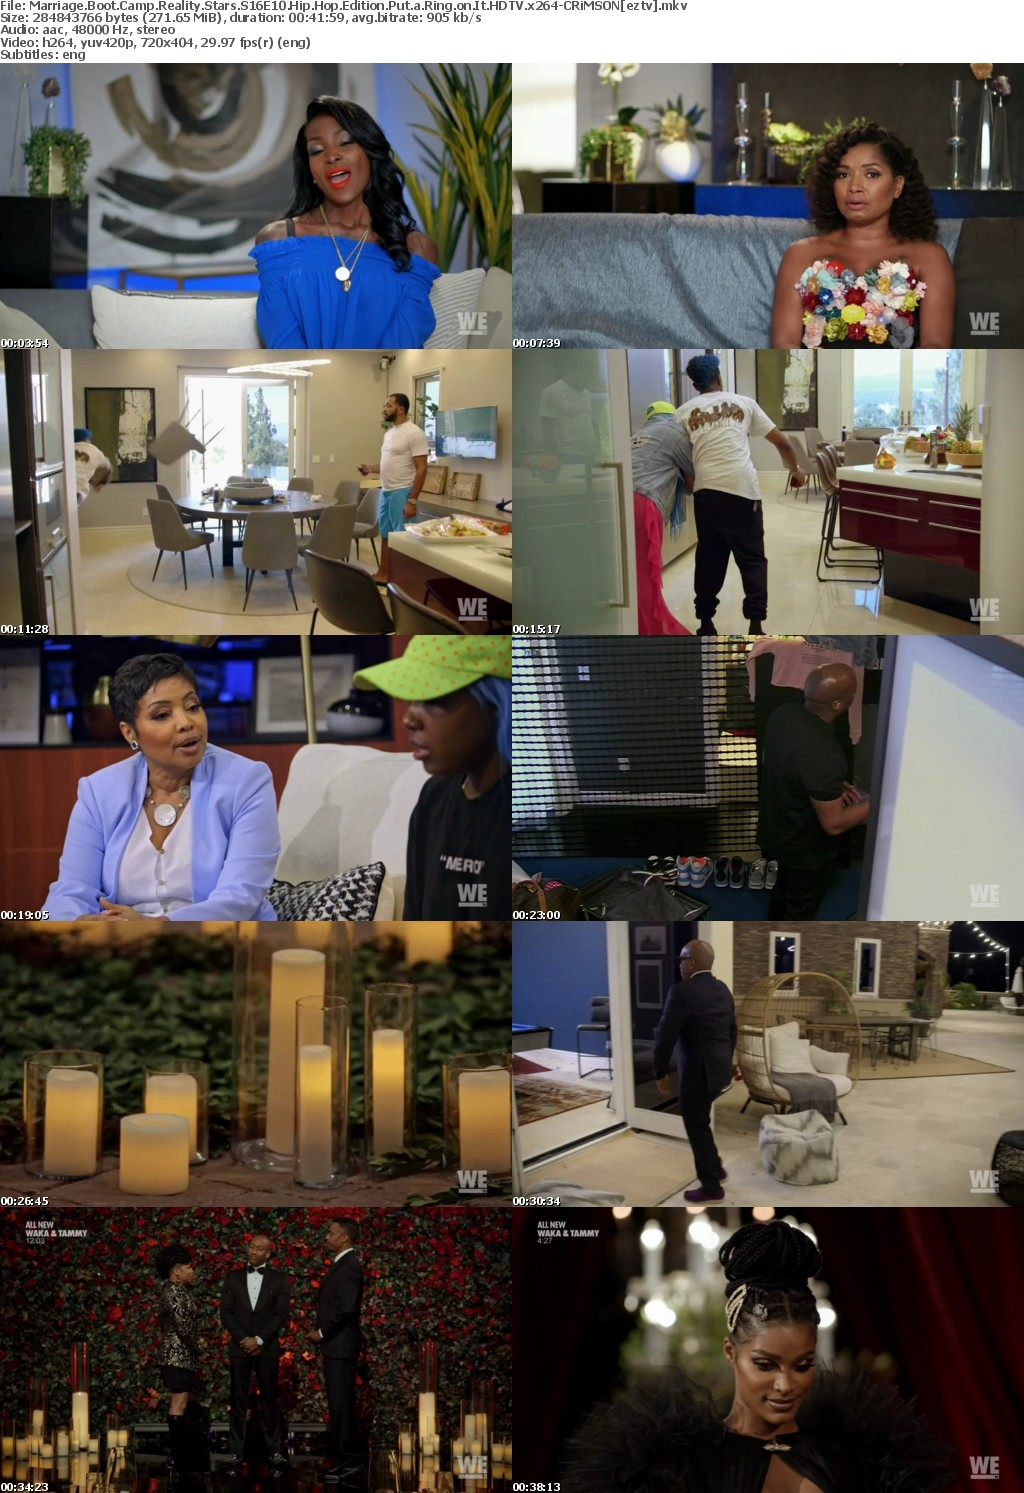 Marriage Boot Camp Reality Stars S16E10 Hip Hop Edition Put a Ring on It HDTV x264-CRiMSON